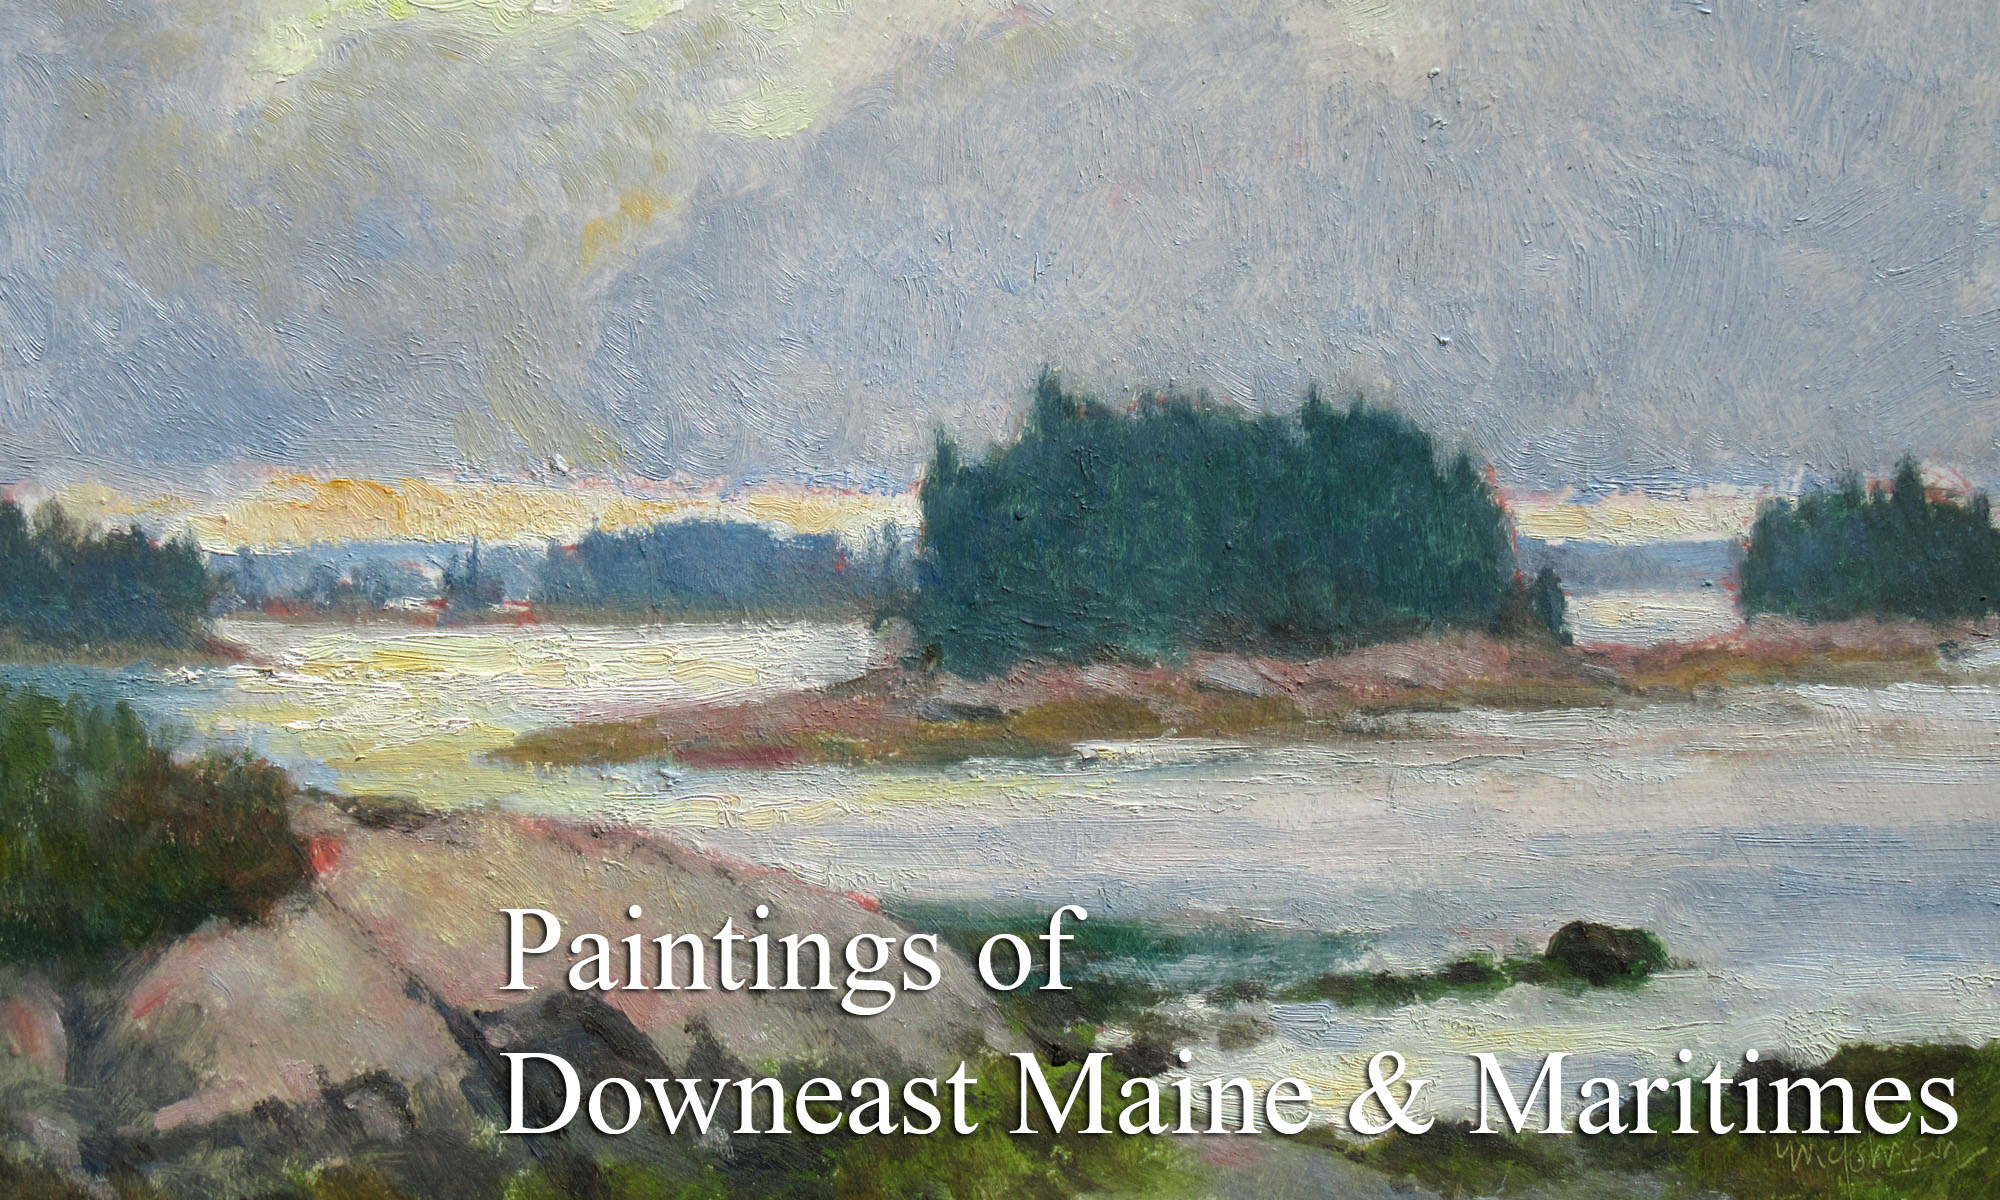 Paintings of Downeast Maine and the Canadian Maritimes by Artist Michael Chesley Johnson